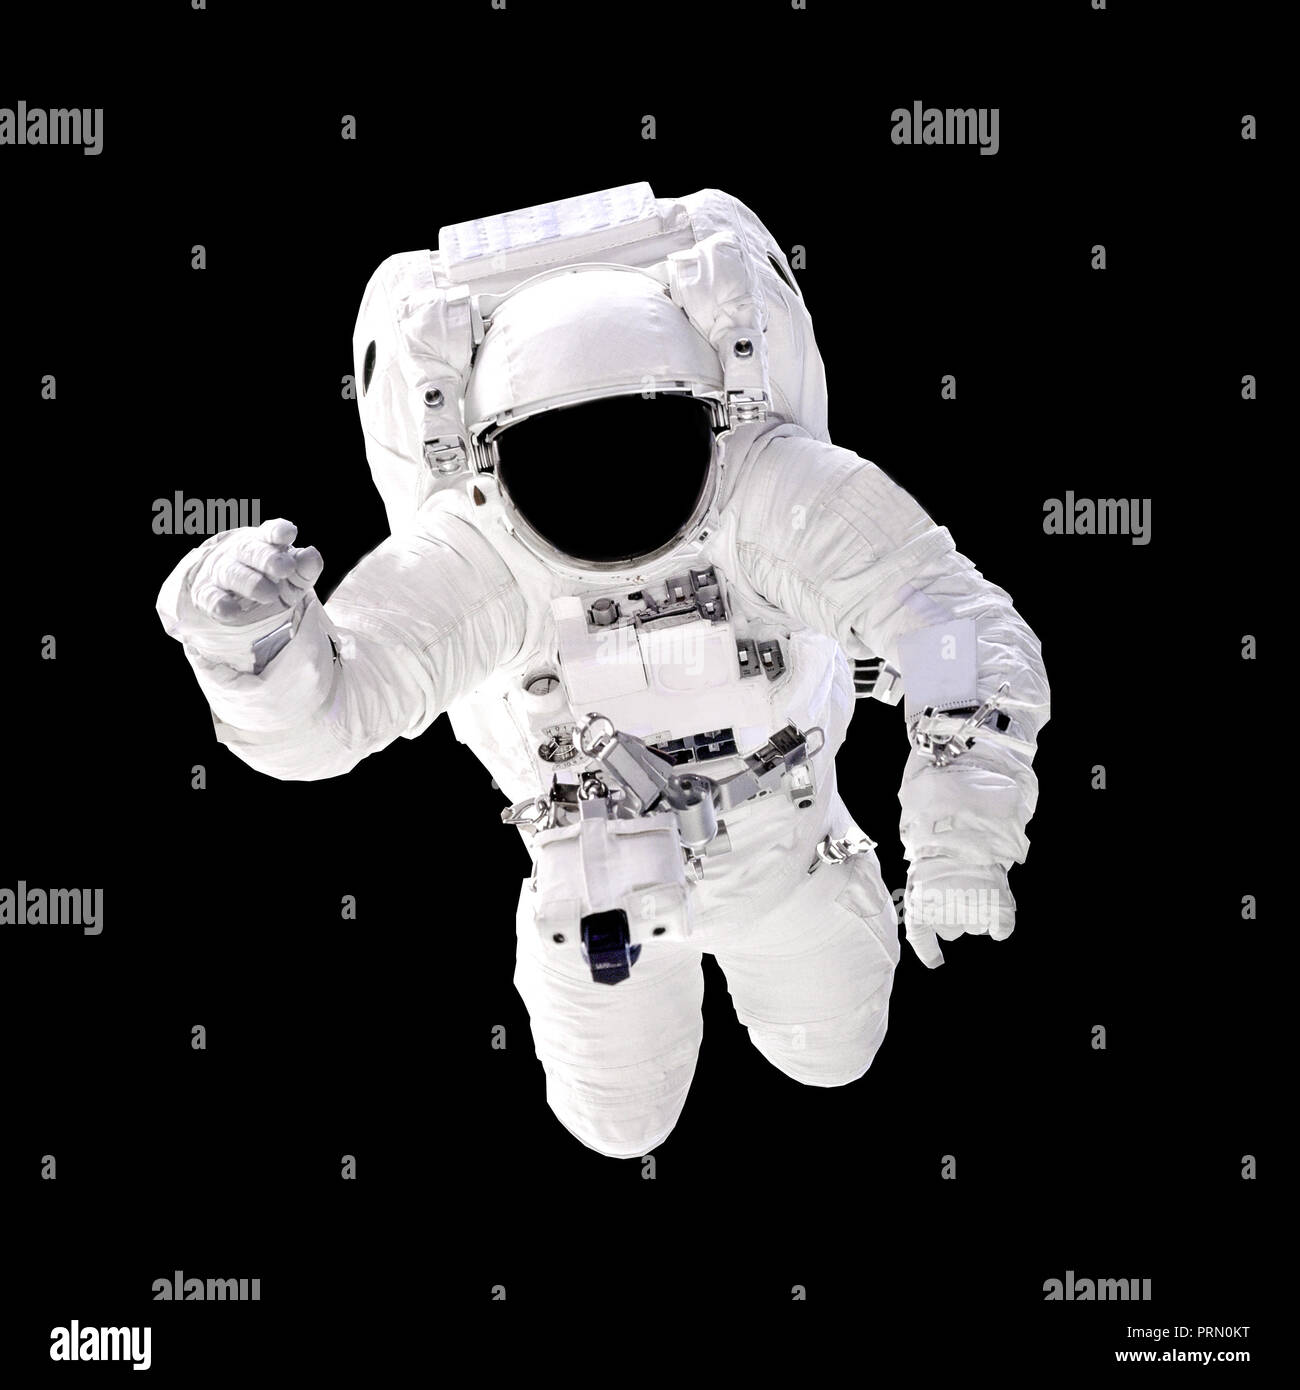 Astronaut in spacesuit close up isolated on black background. Spaceman in outer space. Elements of this image furnished by NASA - Stock Image